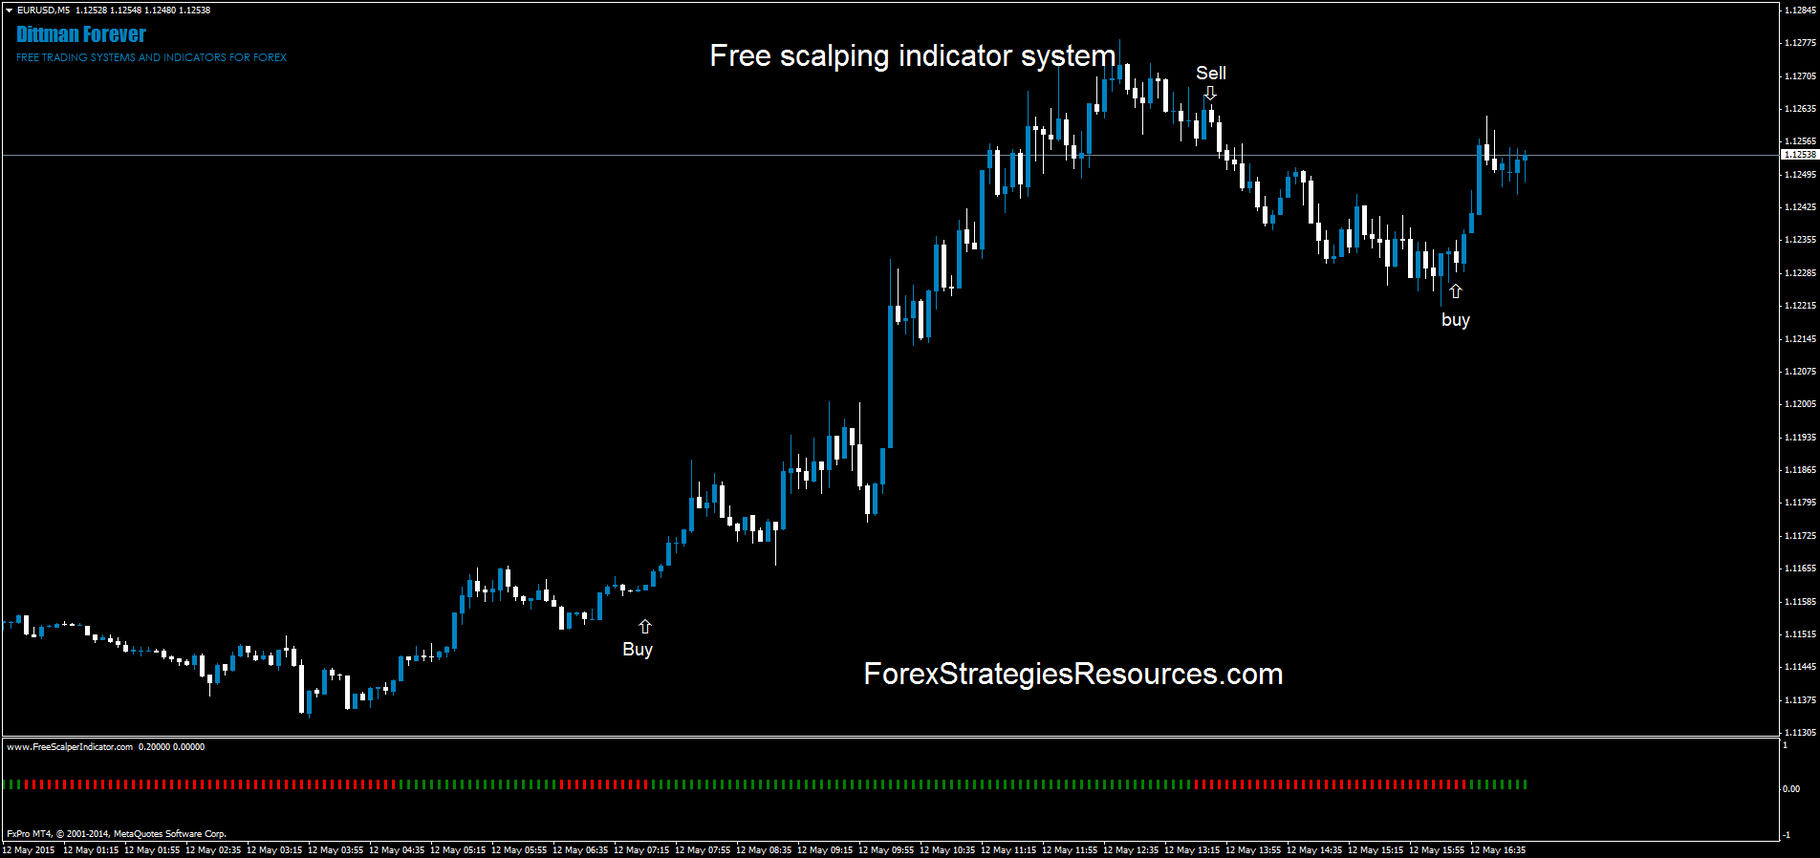 Free scalping indicator system - Forex Strategies - Forex Resources